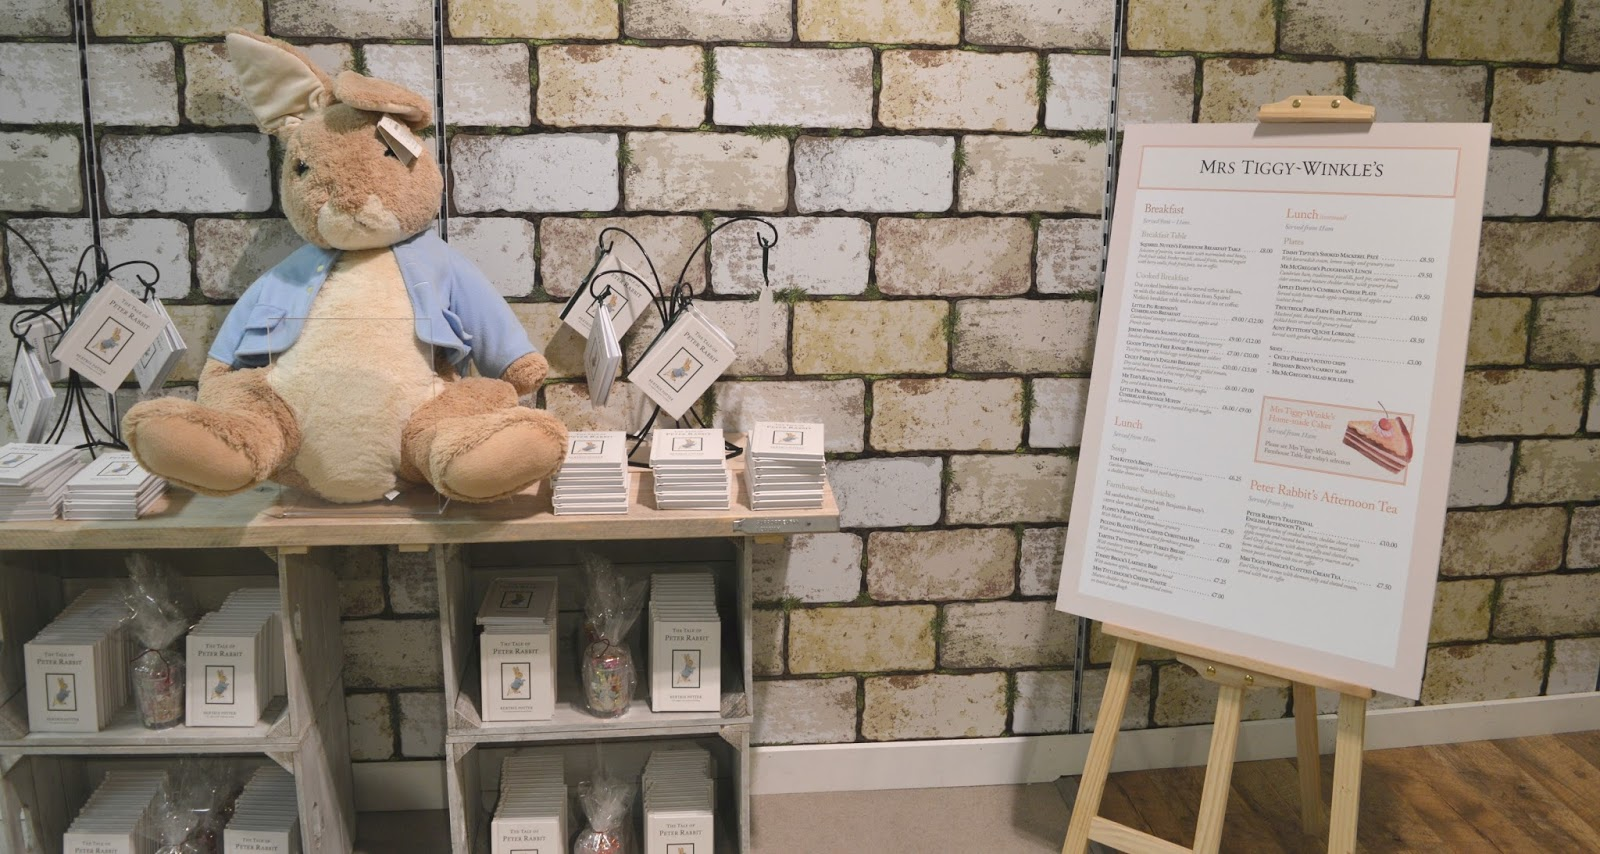 Mrs Tiggy-Winkles Beatrix Potter Pop Up Cafe in Fenwick, Newcastle - A Review